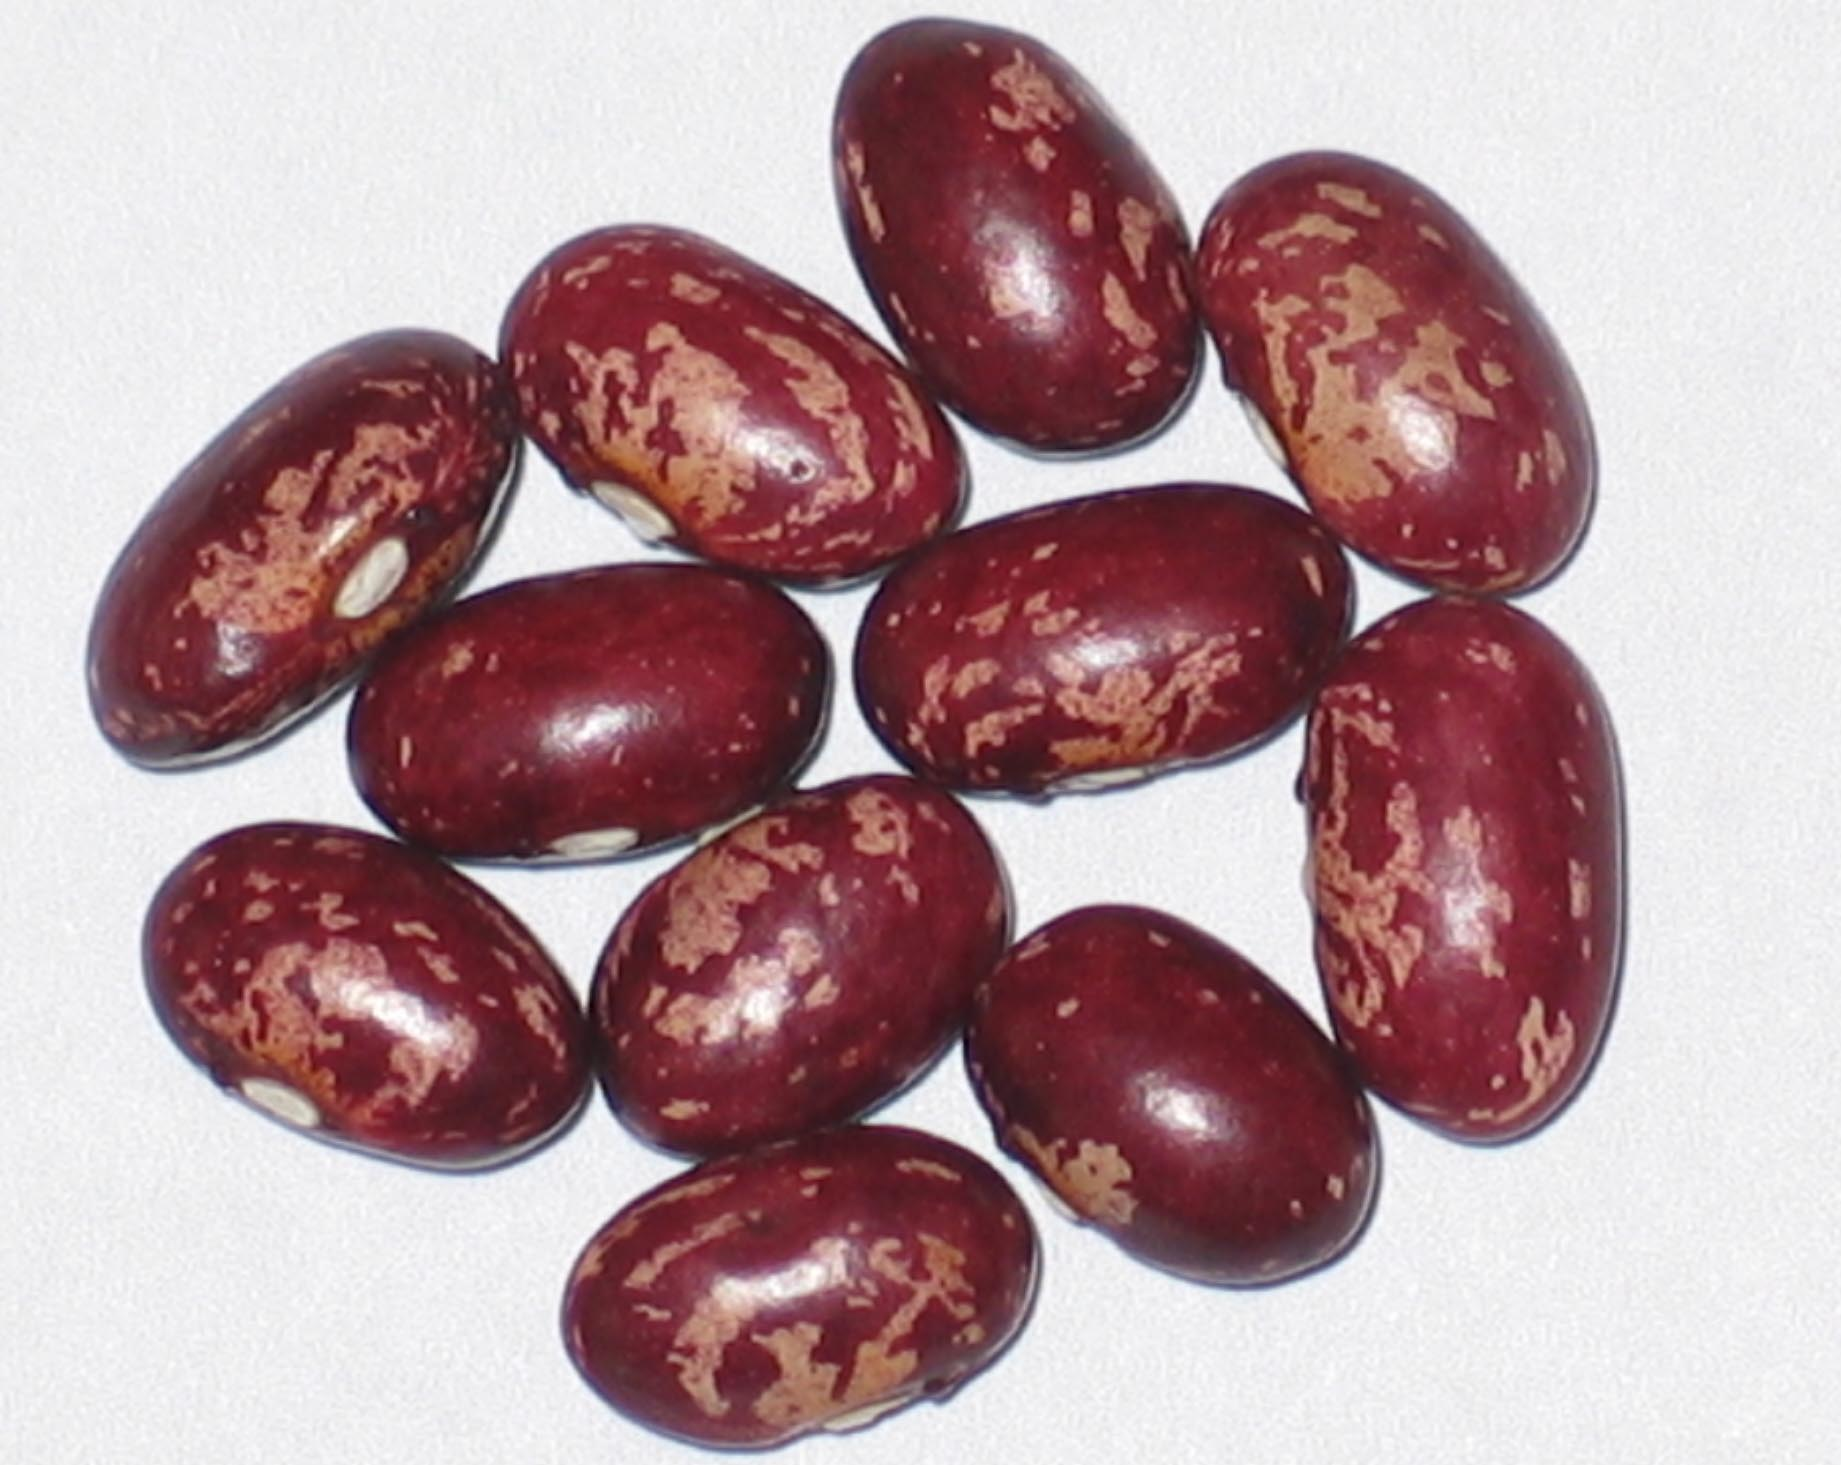 image of Early Warwick beans